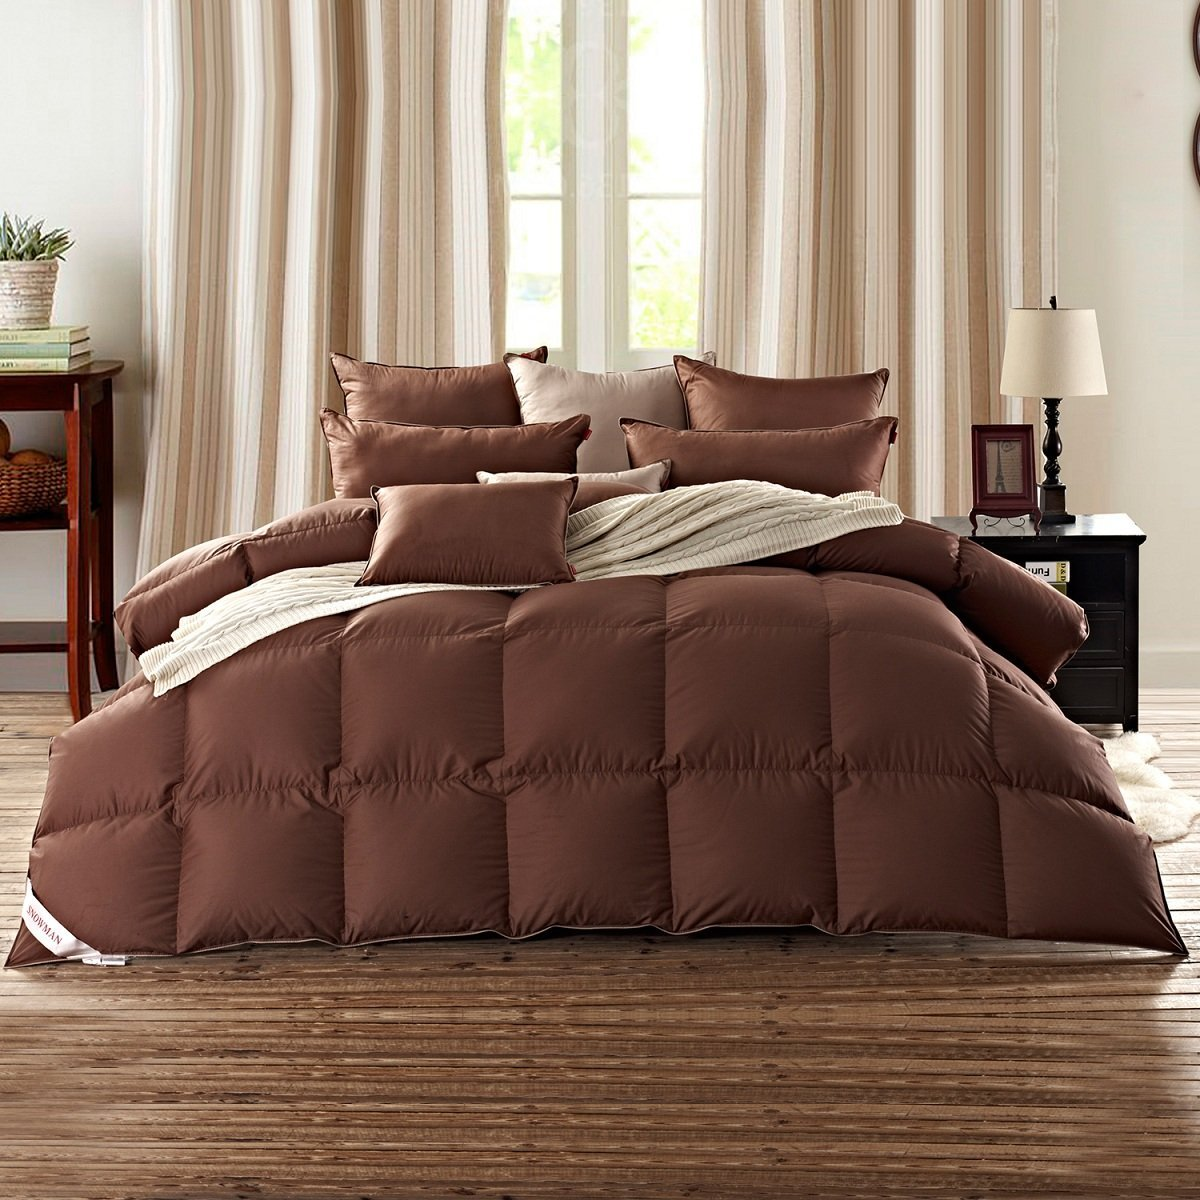 colored goose down comforter not just white and black best goose down comforter reviews. Black Bedroom Furniture Sets. Home Design Ideas